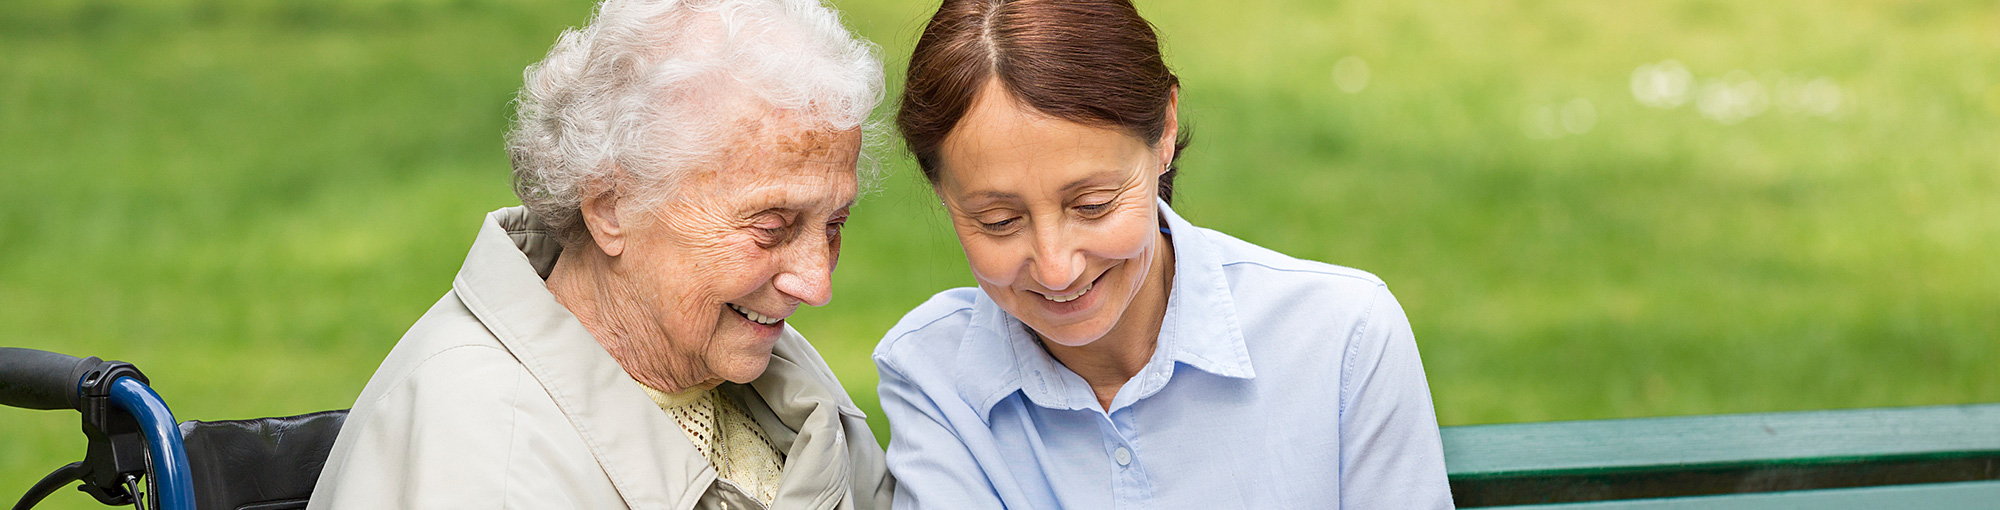 Senior Woman on Bench with Retirement Community Aide